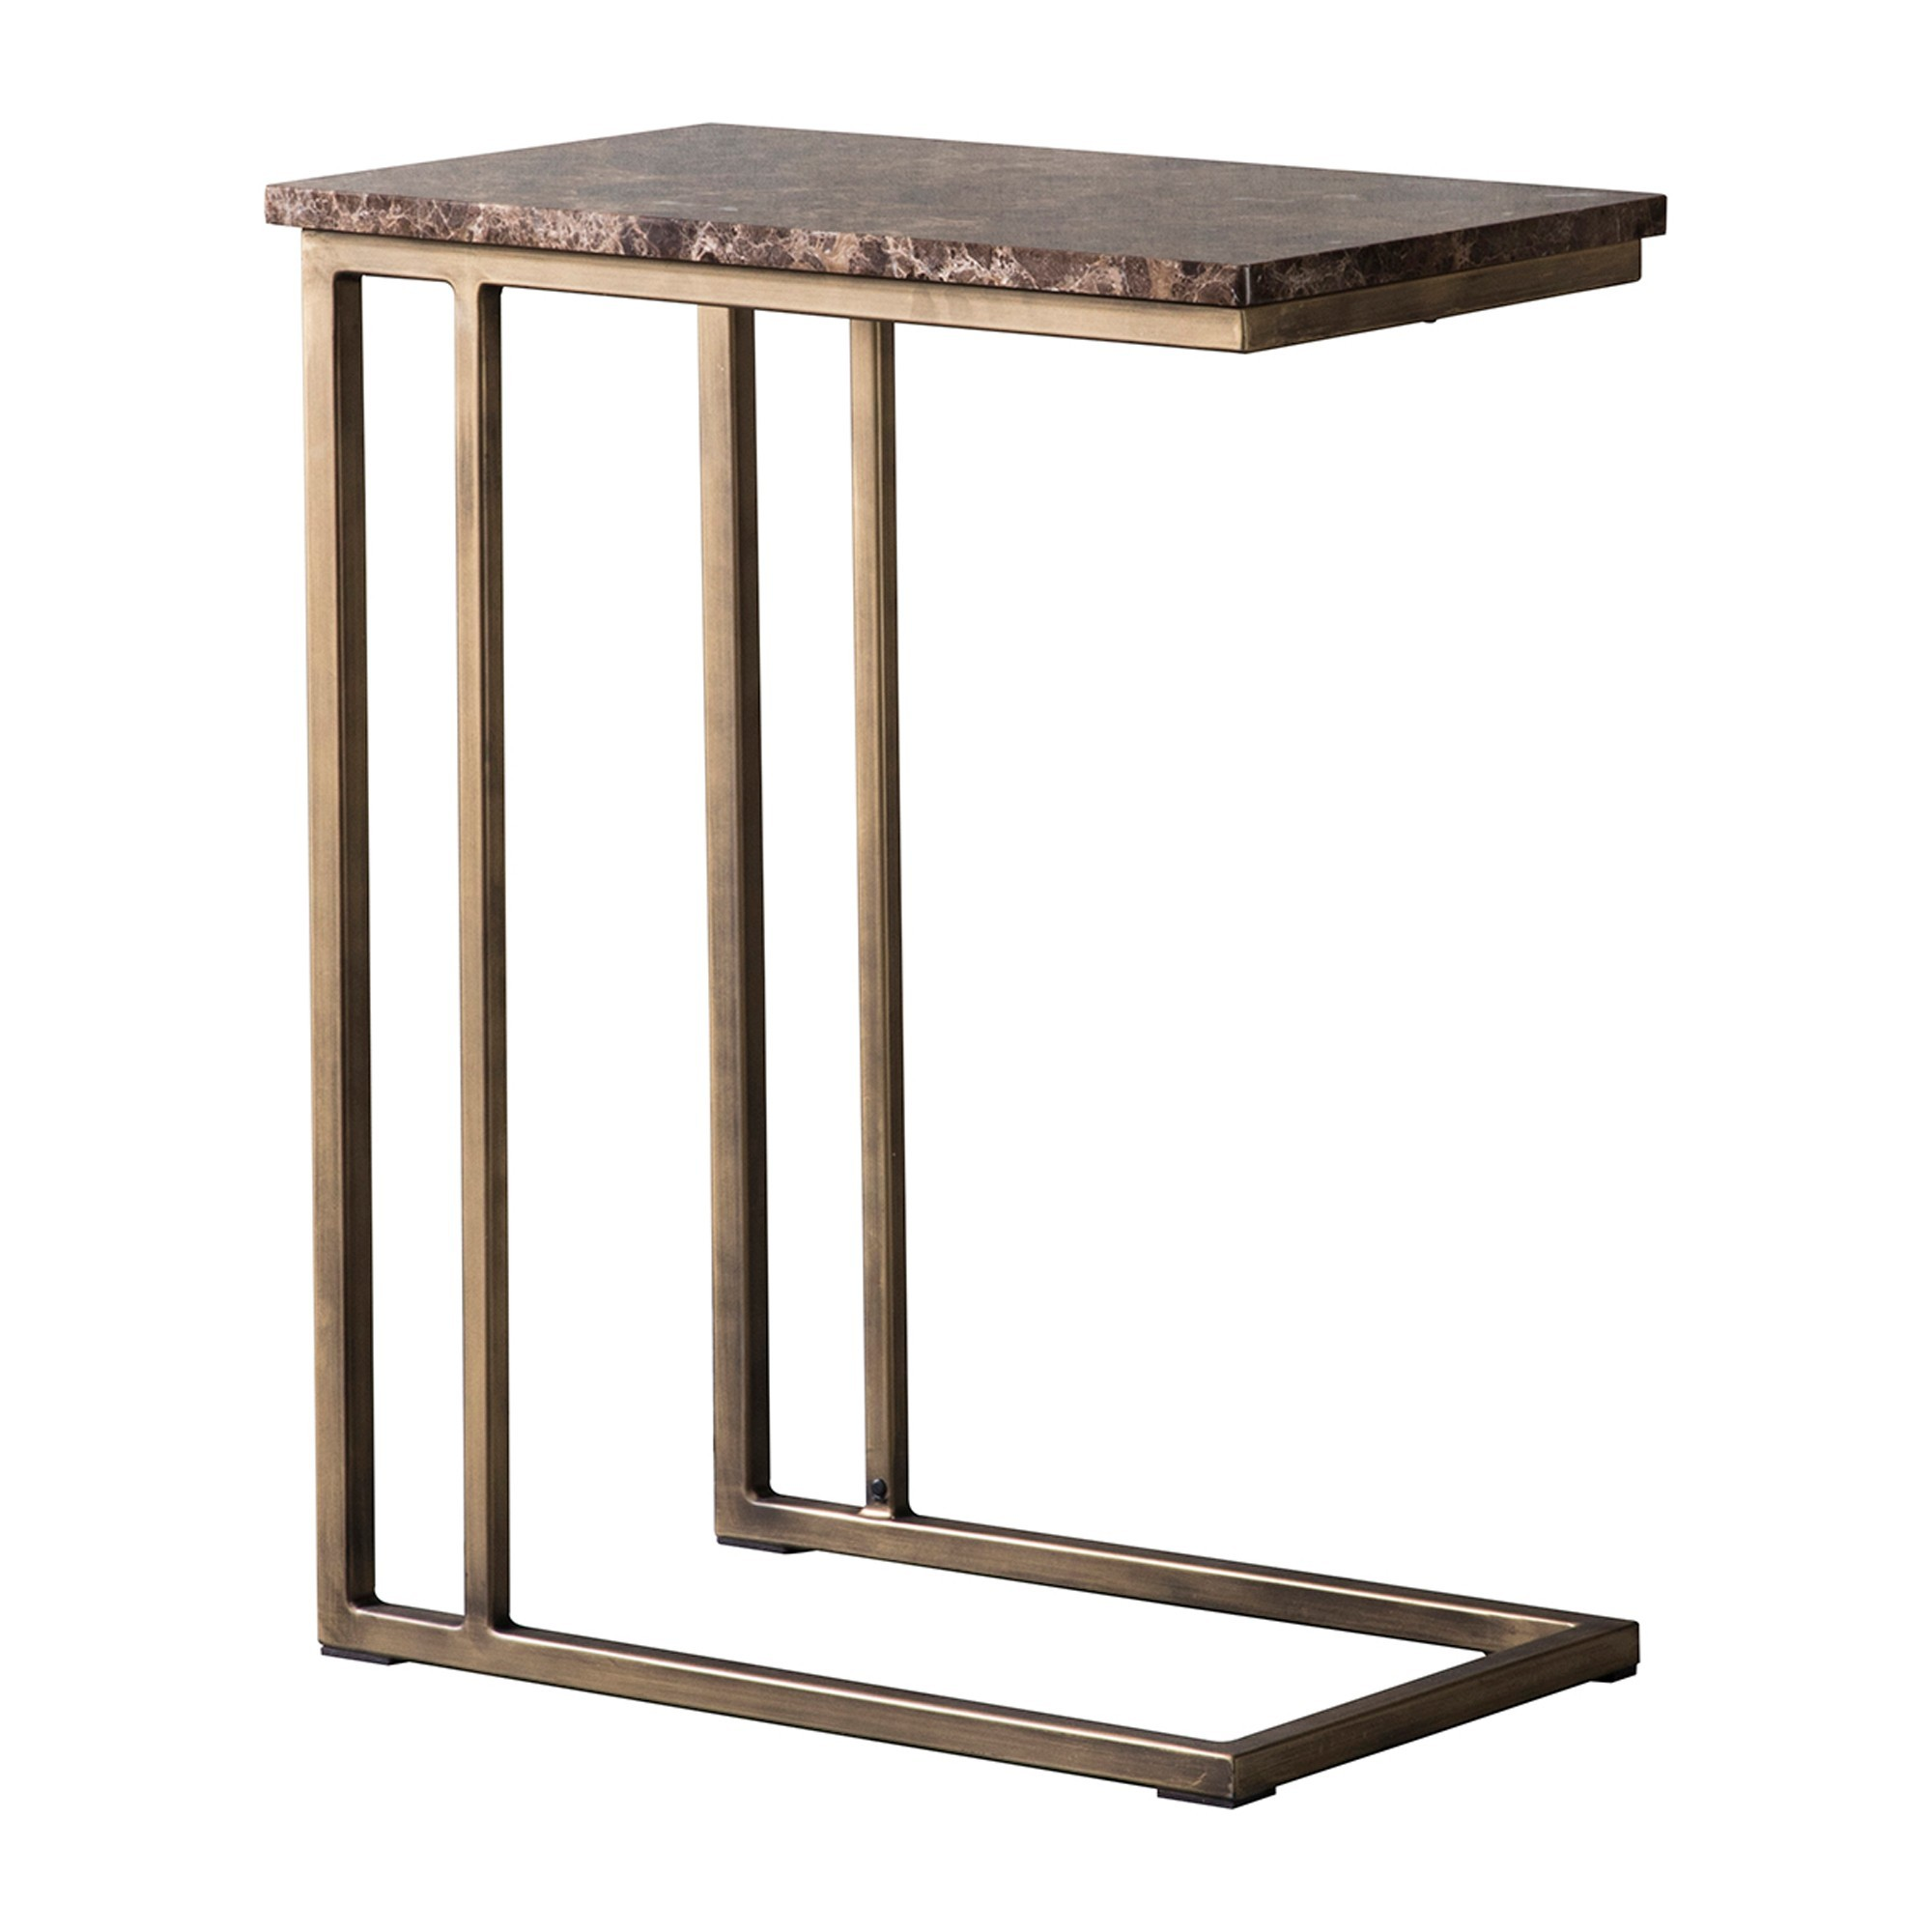 Chan Marble Top C-shape Table, Brown / Brass